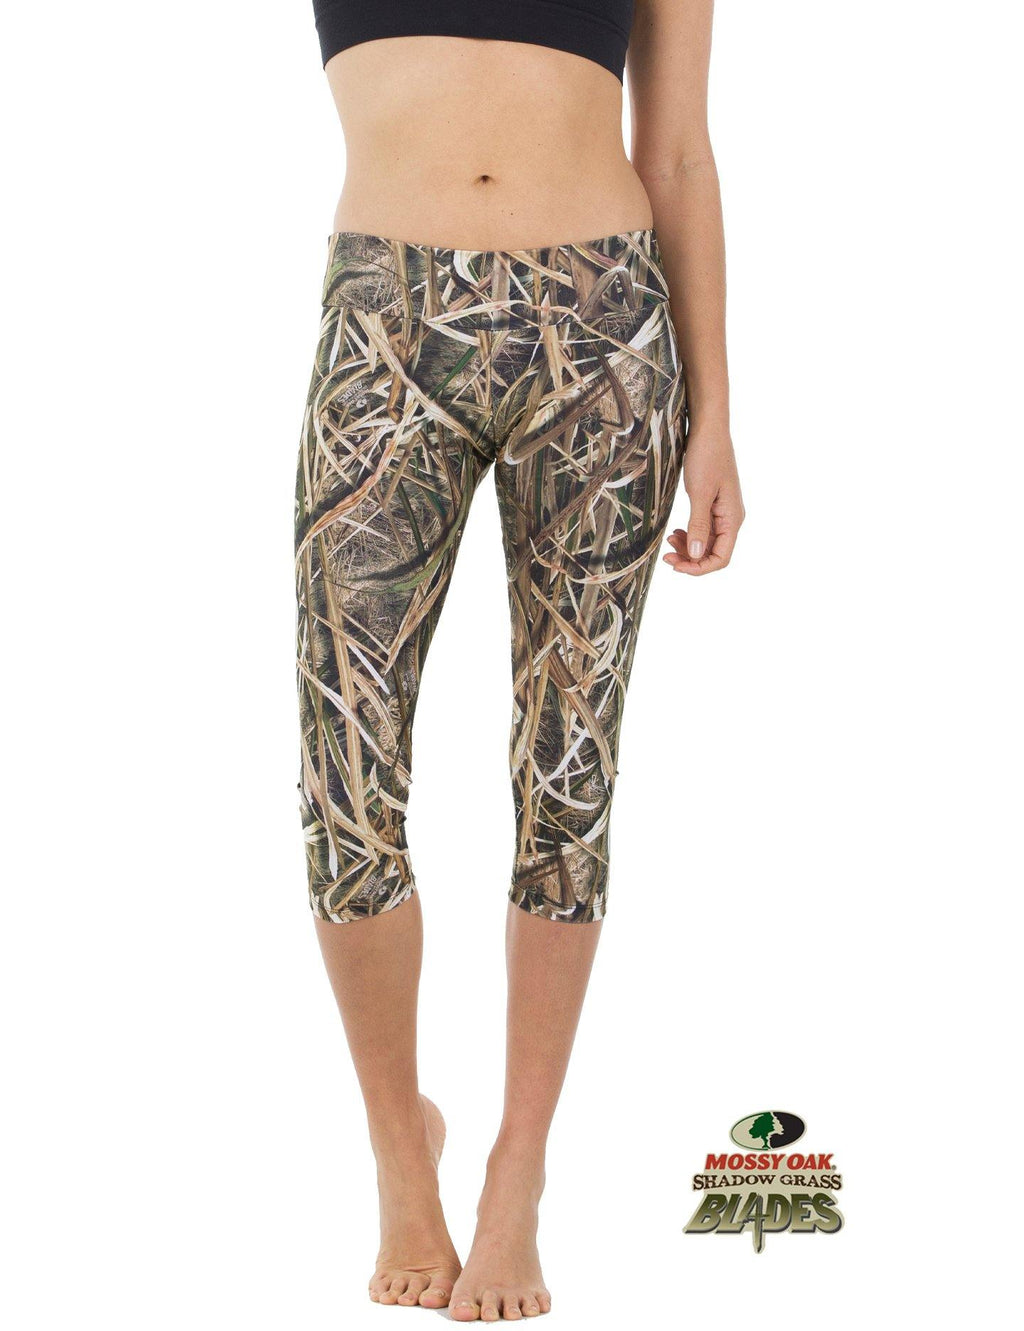 Apsara Leggings Low Waist Capri, Mossy Oak Shadow Grass Blades